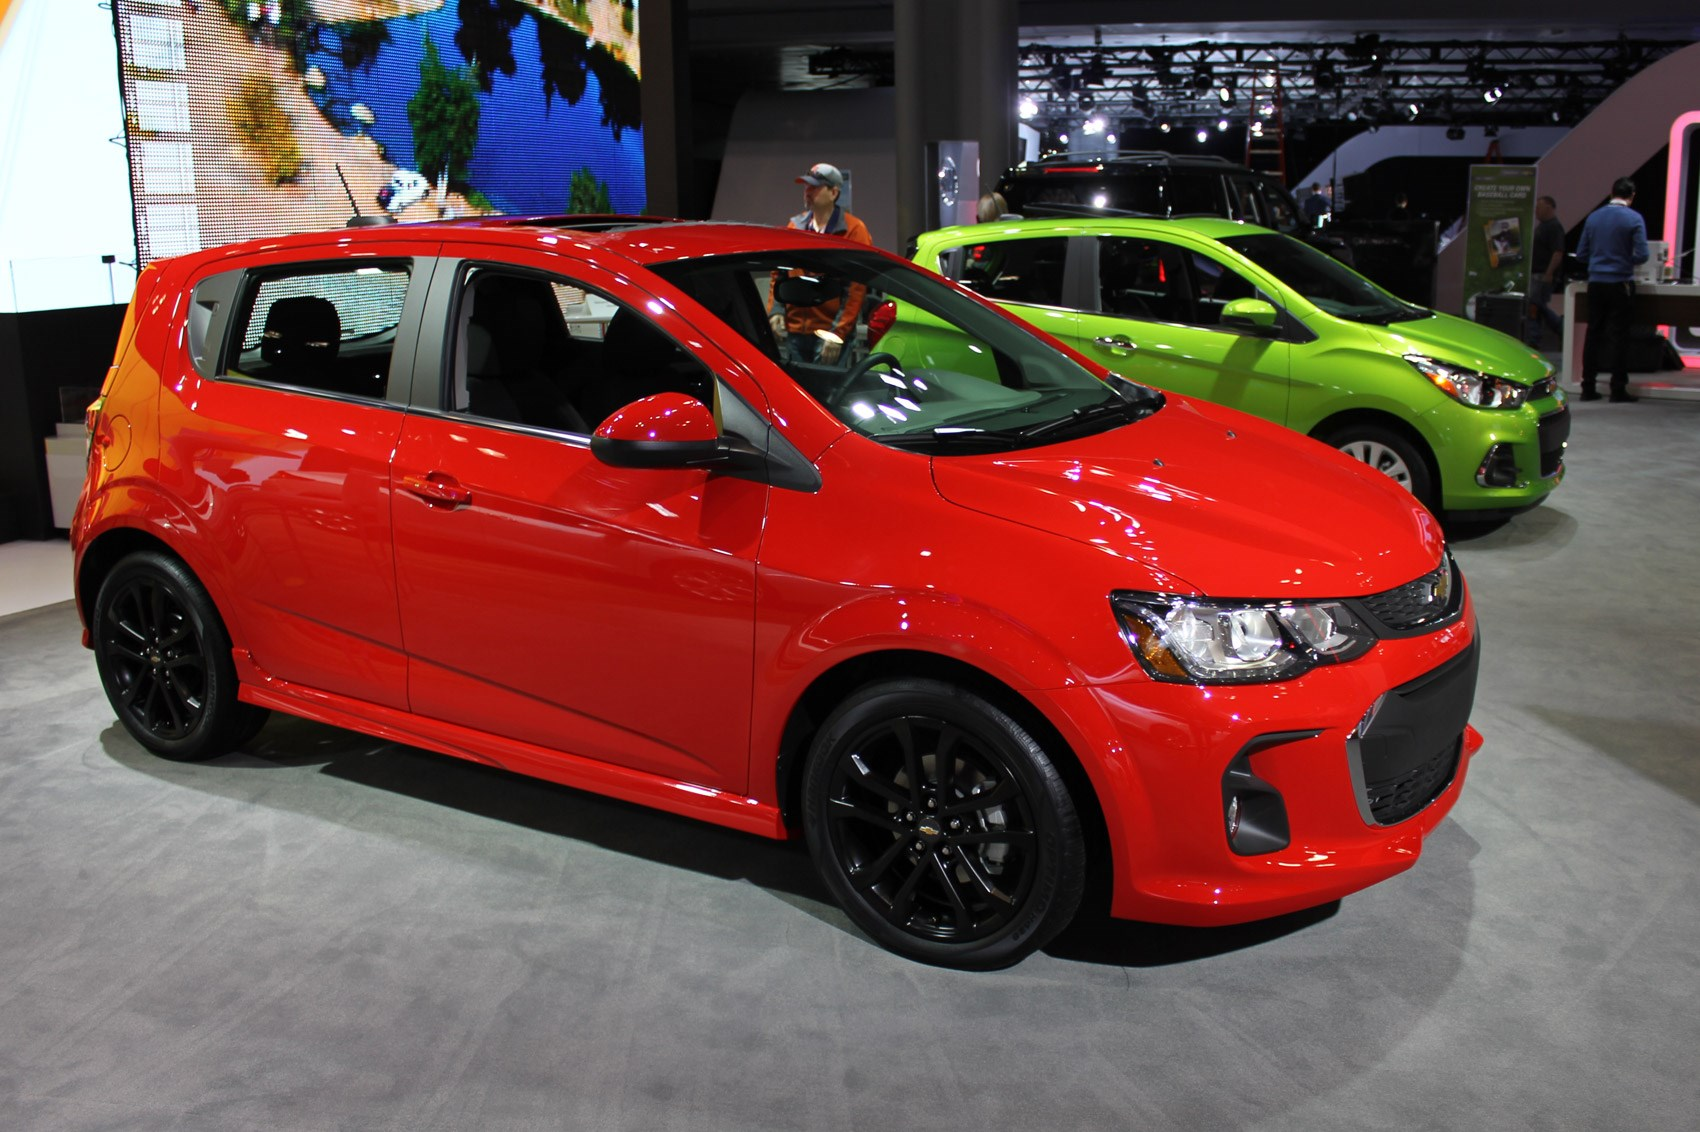 Facelifted Chevrolet Sonic Unveiled In New York By Car